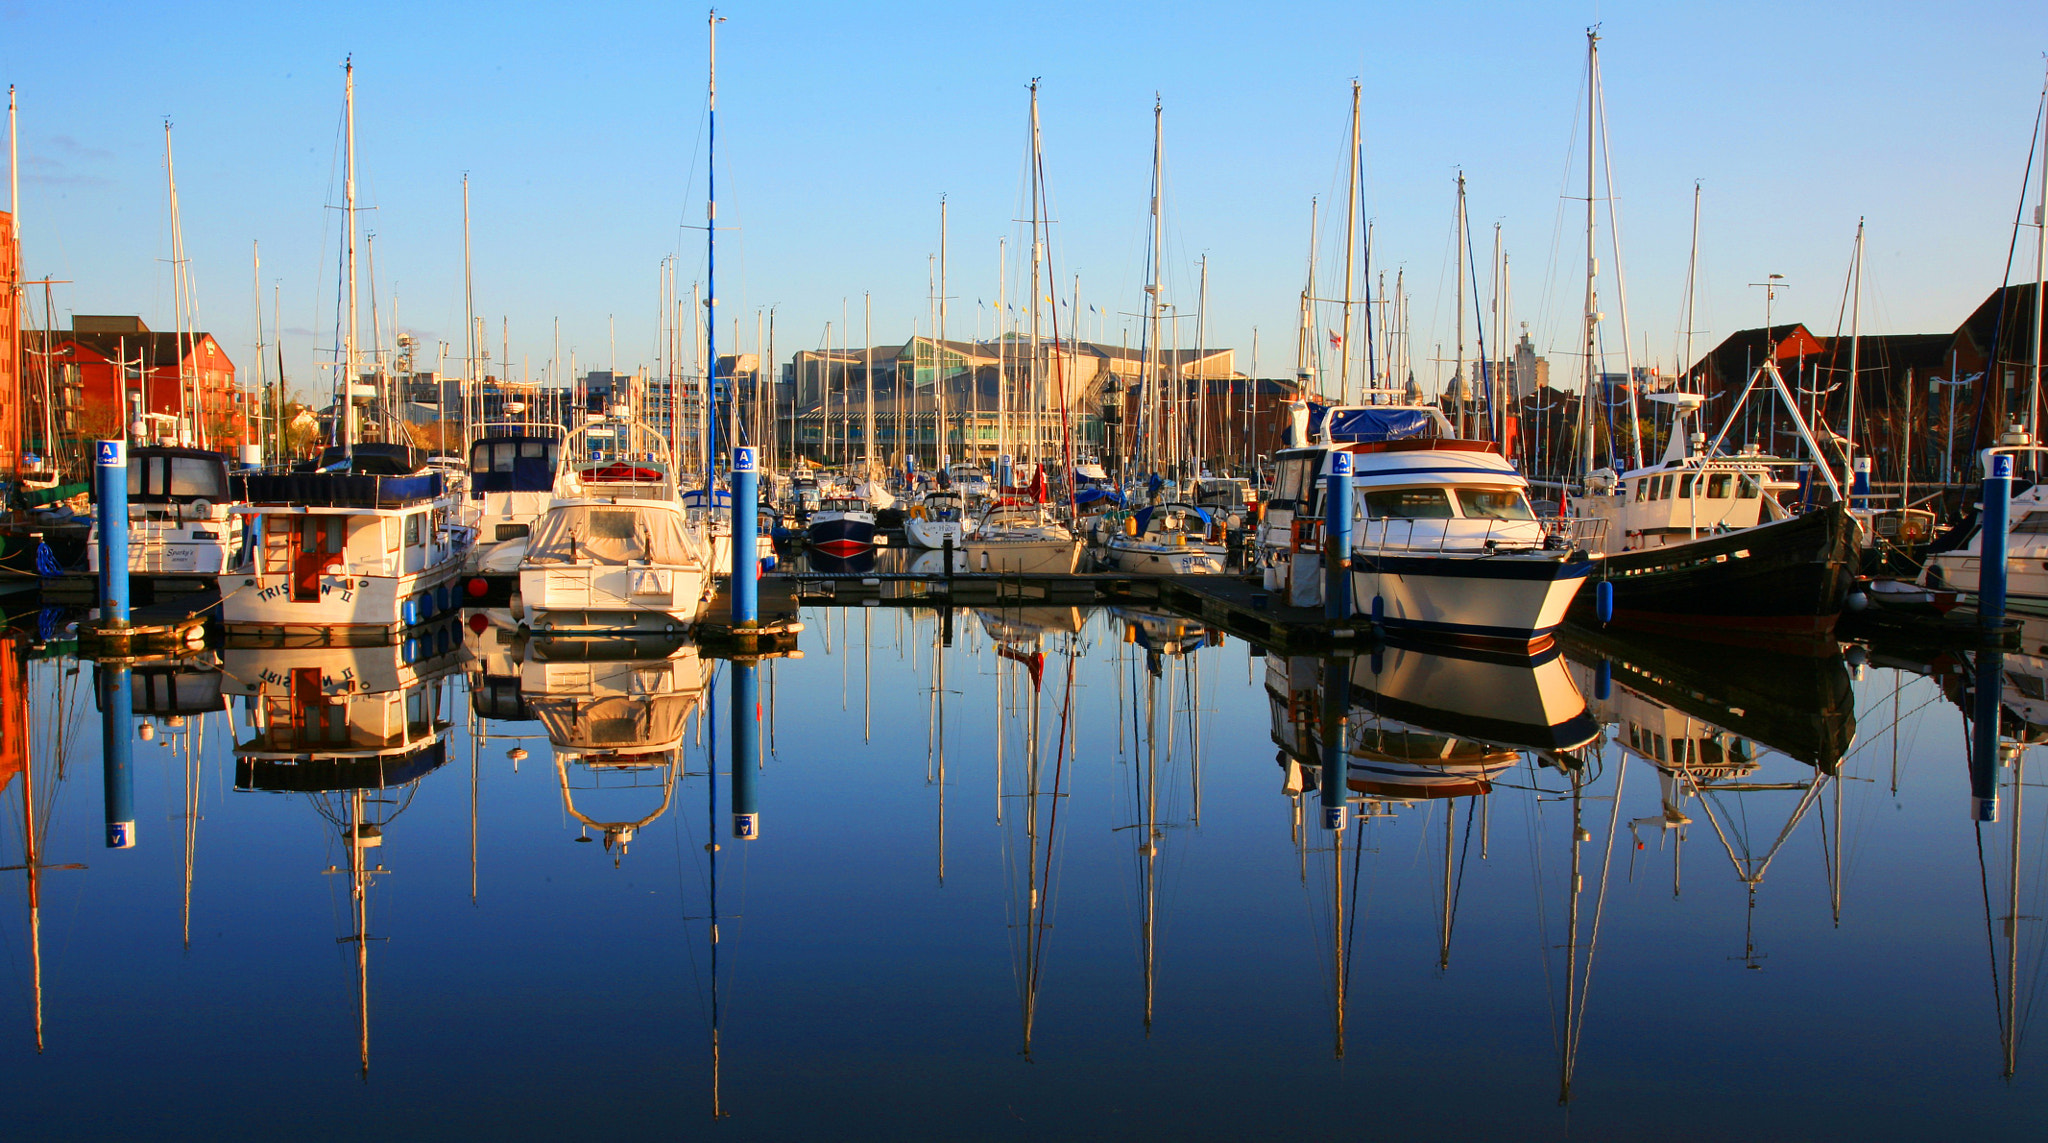 Photograph Boats in the Marina by Philip Beasley on 500px